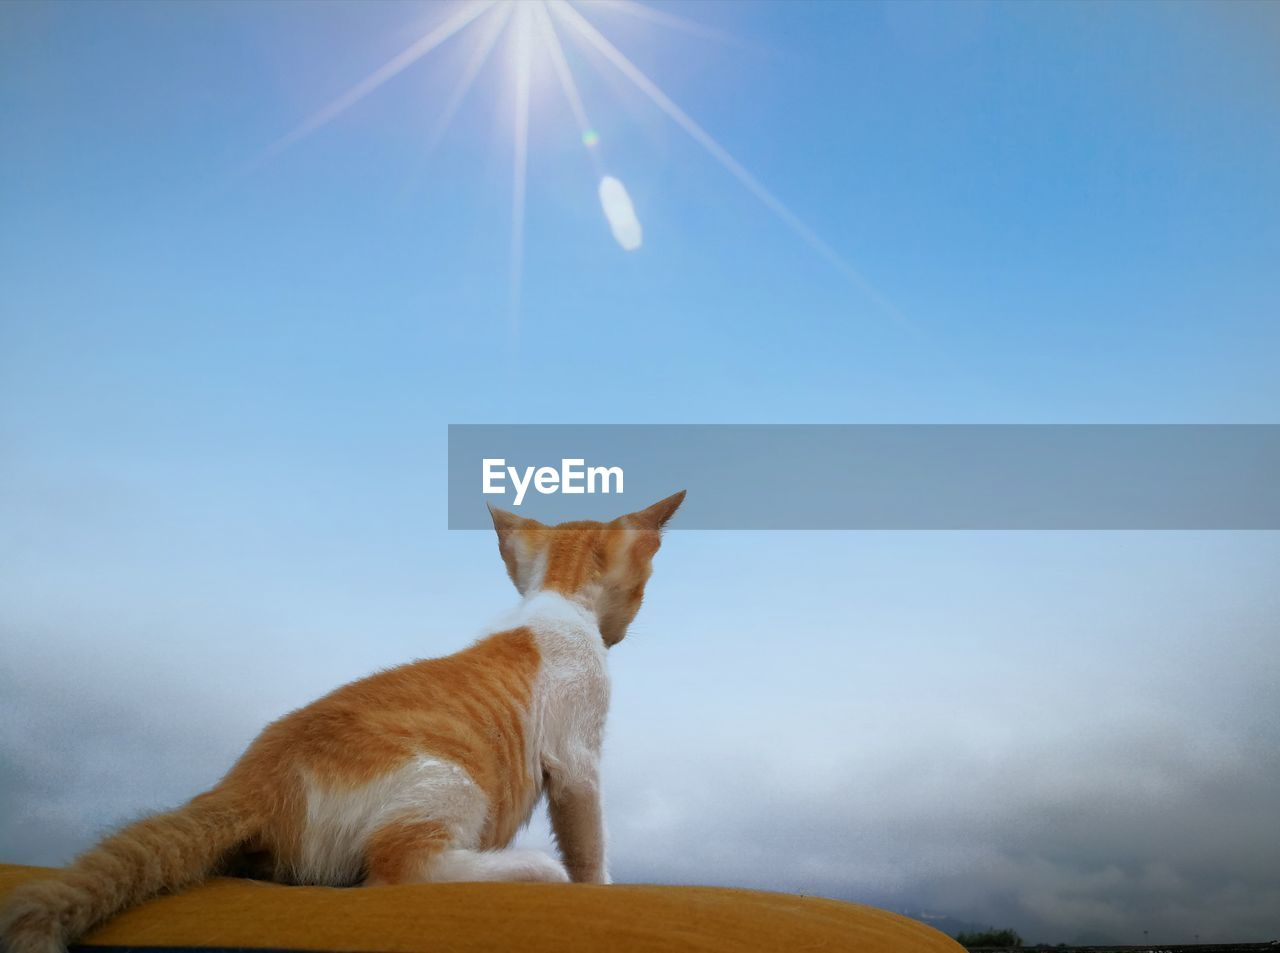 mammal, domestic, pets, domestic animals, animal, one animal, animal themes, cat, sky, domestic cat, feline, vertebrate, lens flare, sunlight, sunbeam, no people, nature, sun, day, looking, ginger cat, whisker